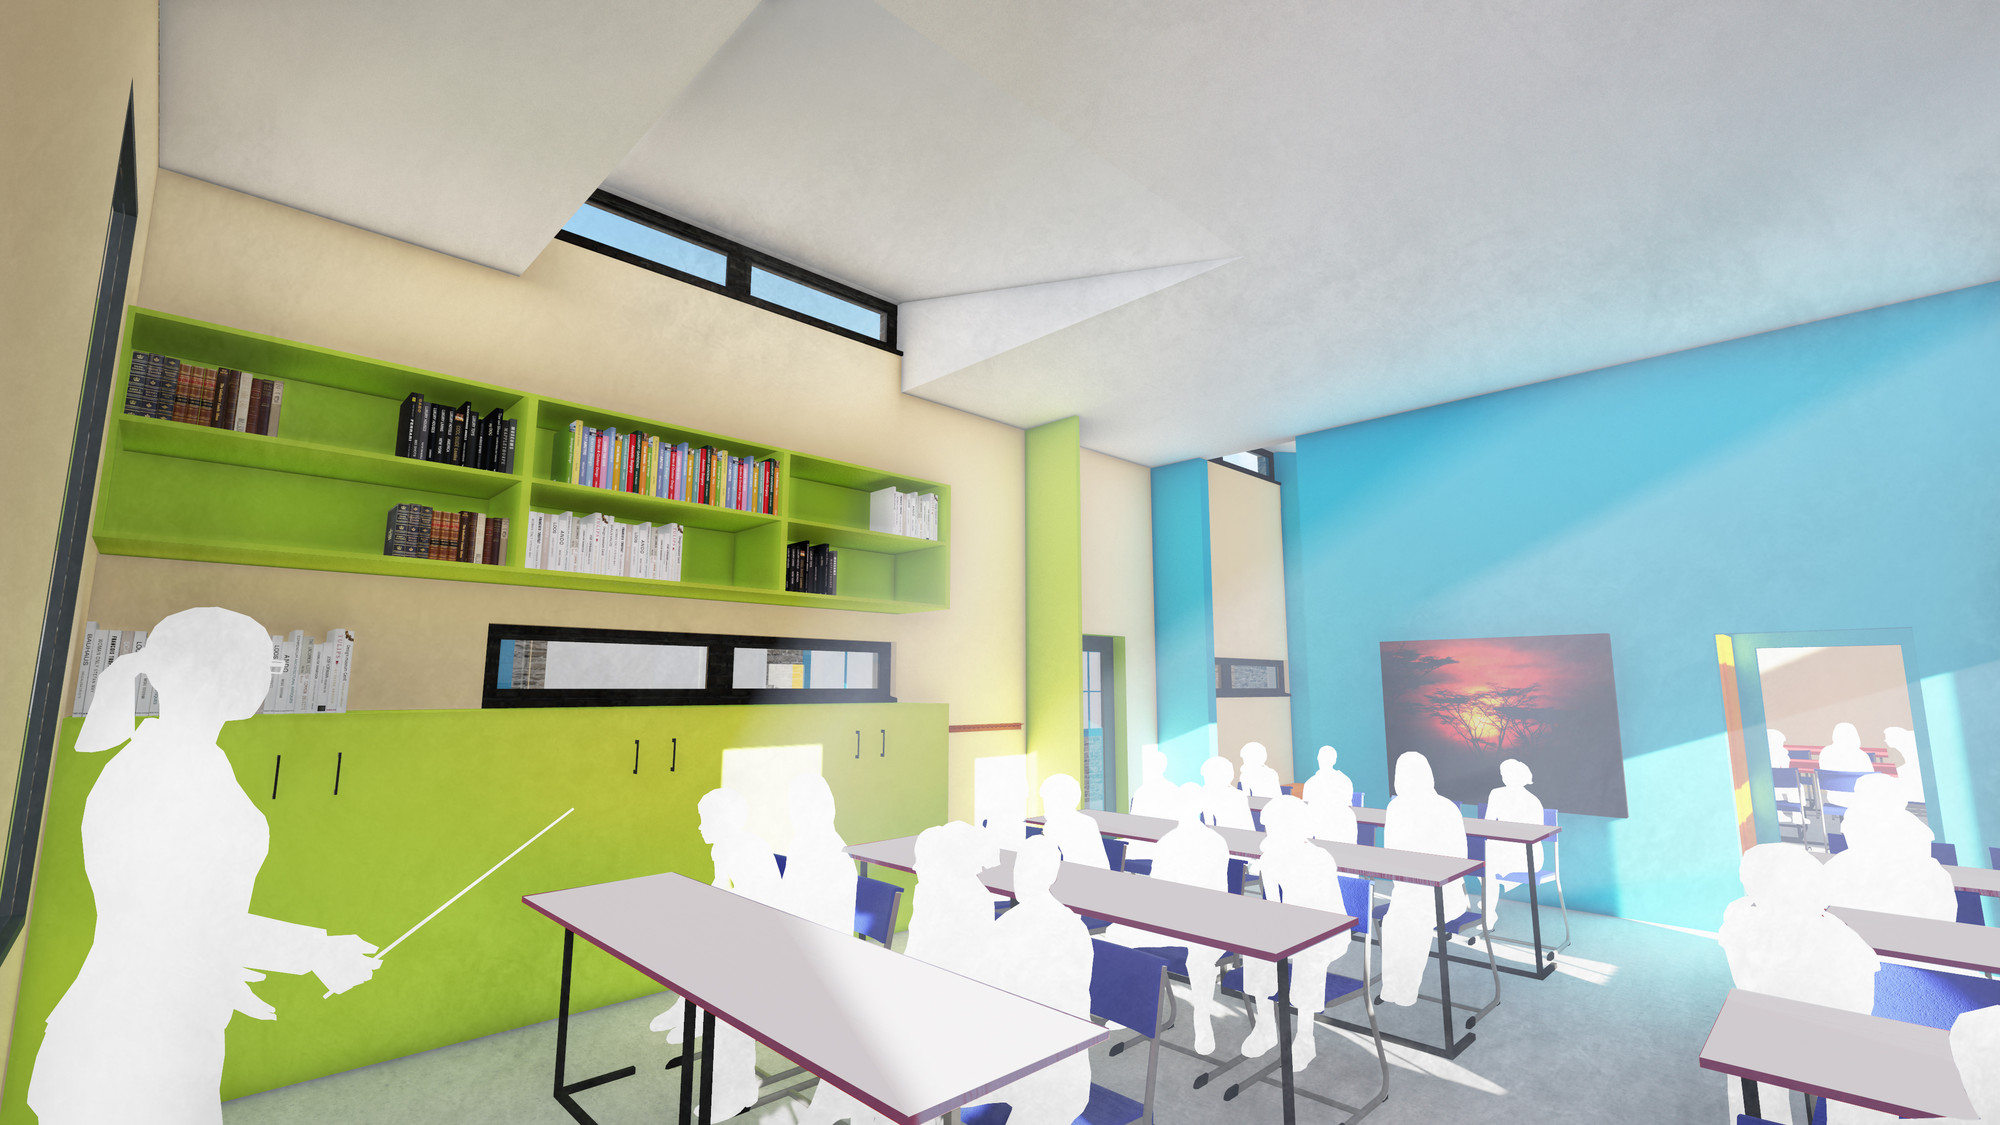 Classroom Design College : Place by design wins cool school competition